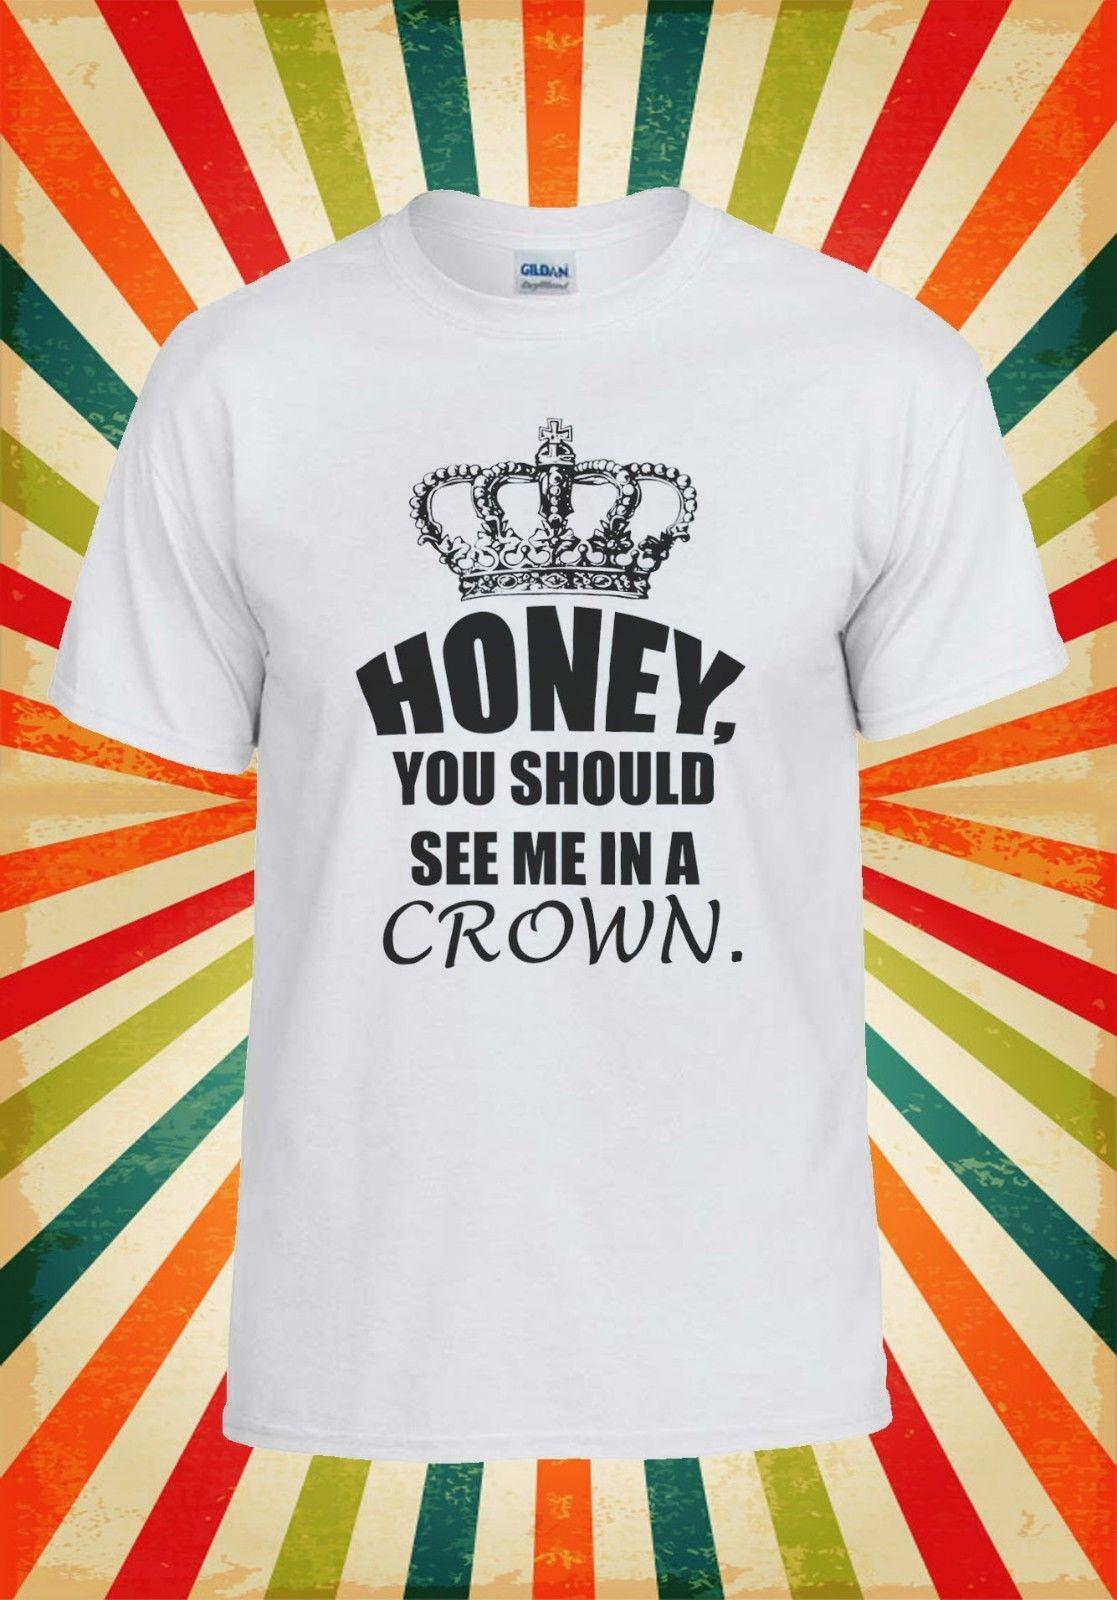 571f5ce19be604 Honey You Should See Me Crown Queen Men Women Vest Tank Top Unisex T Shirt  1740 Funny Unisex Casual Top Tees T Shirts Ts Shirt From Wrapfairy